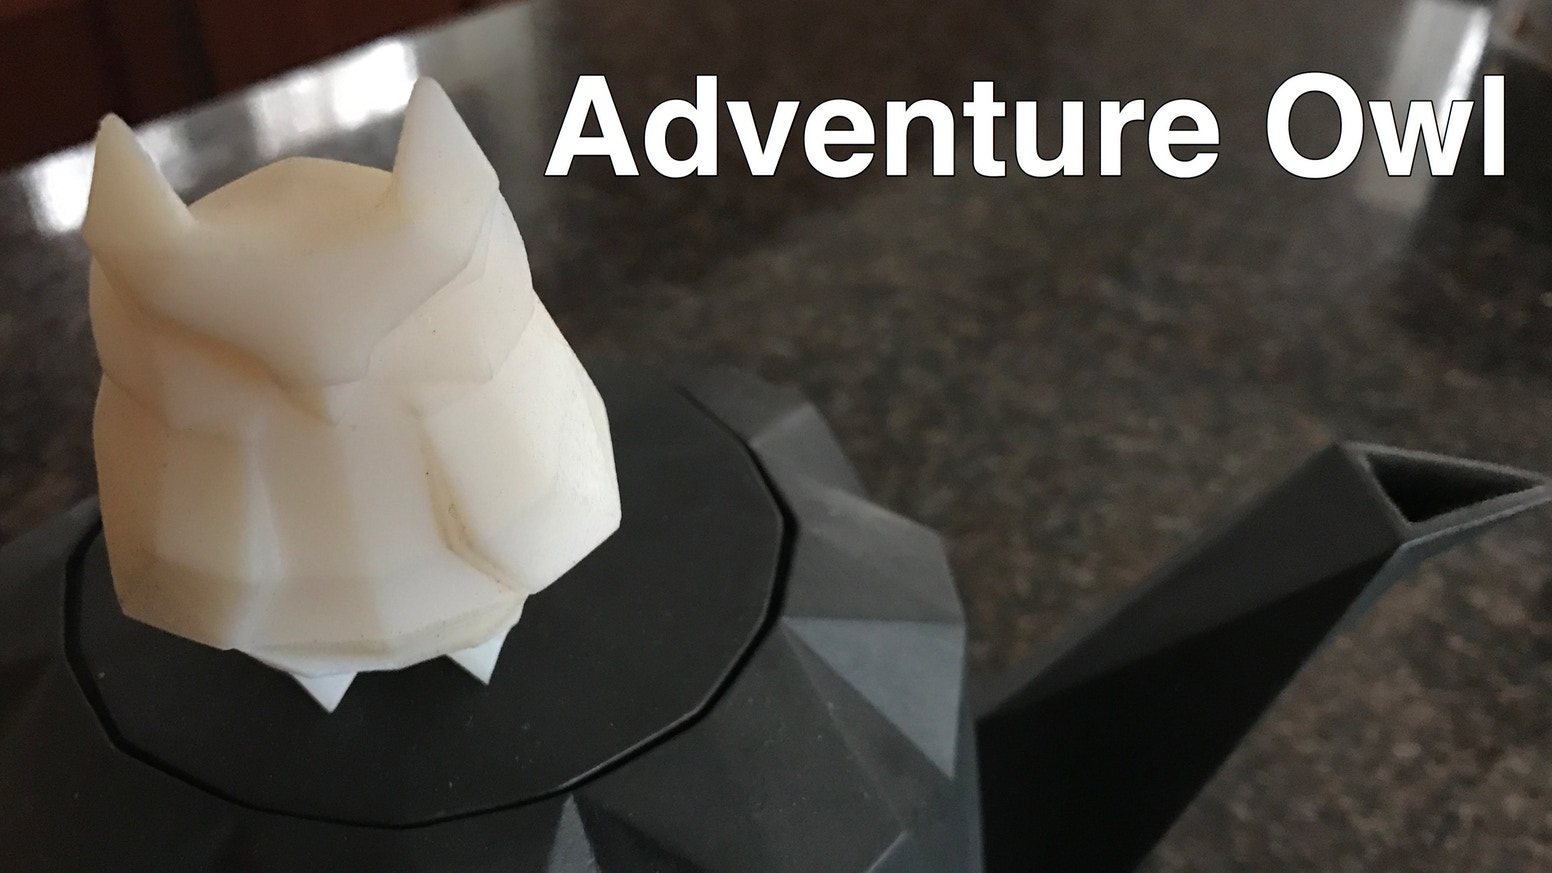 Adventure Owl wants to see the world and go on adventures with you. This kickstarter is over, but we will have adventure owls for sale at bre.co in the near future if you missed out.